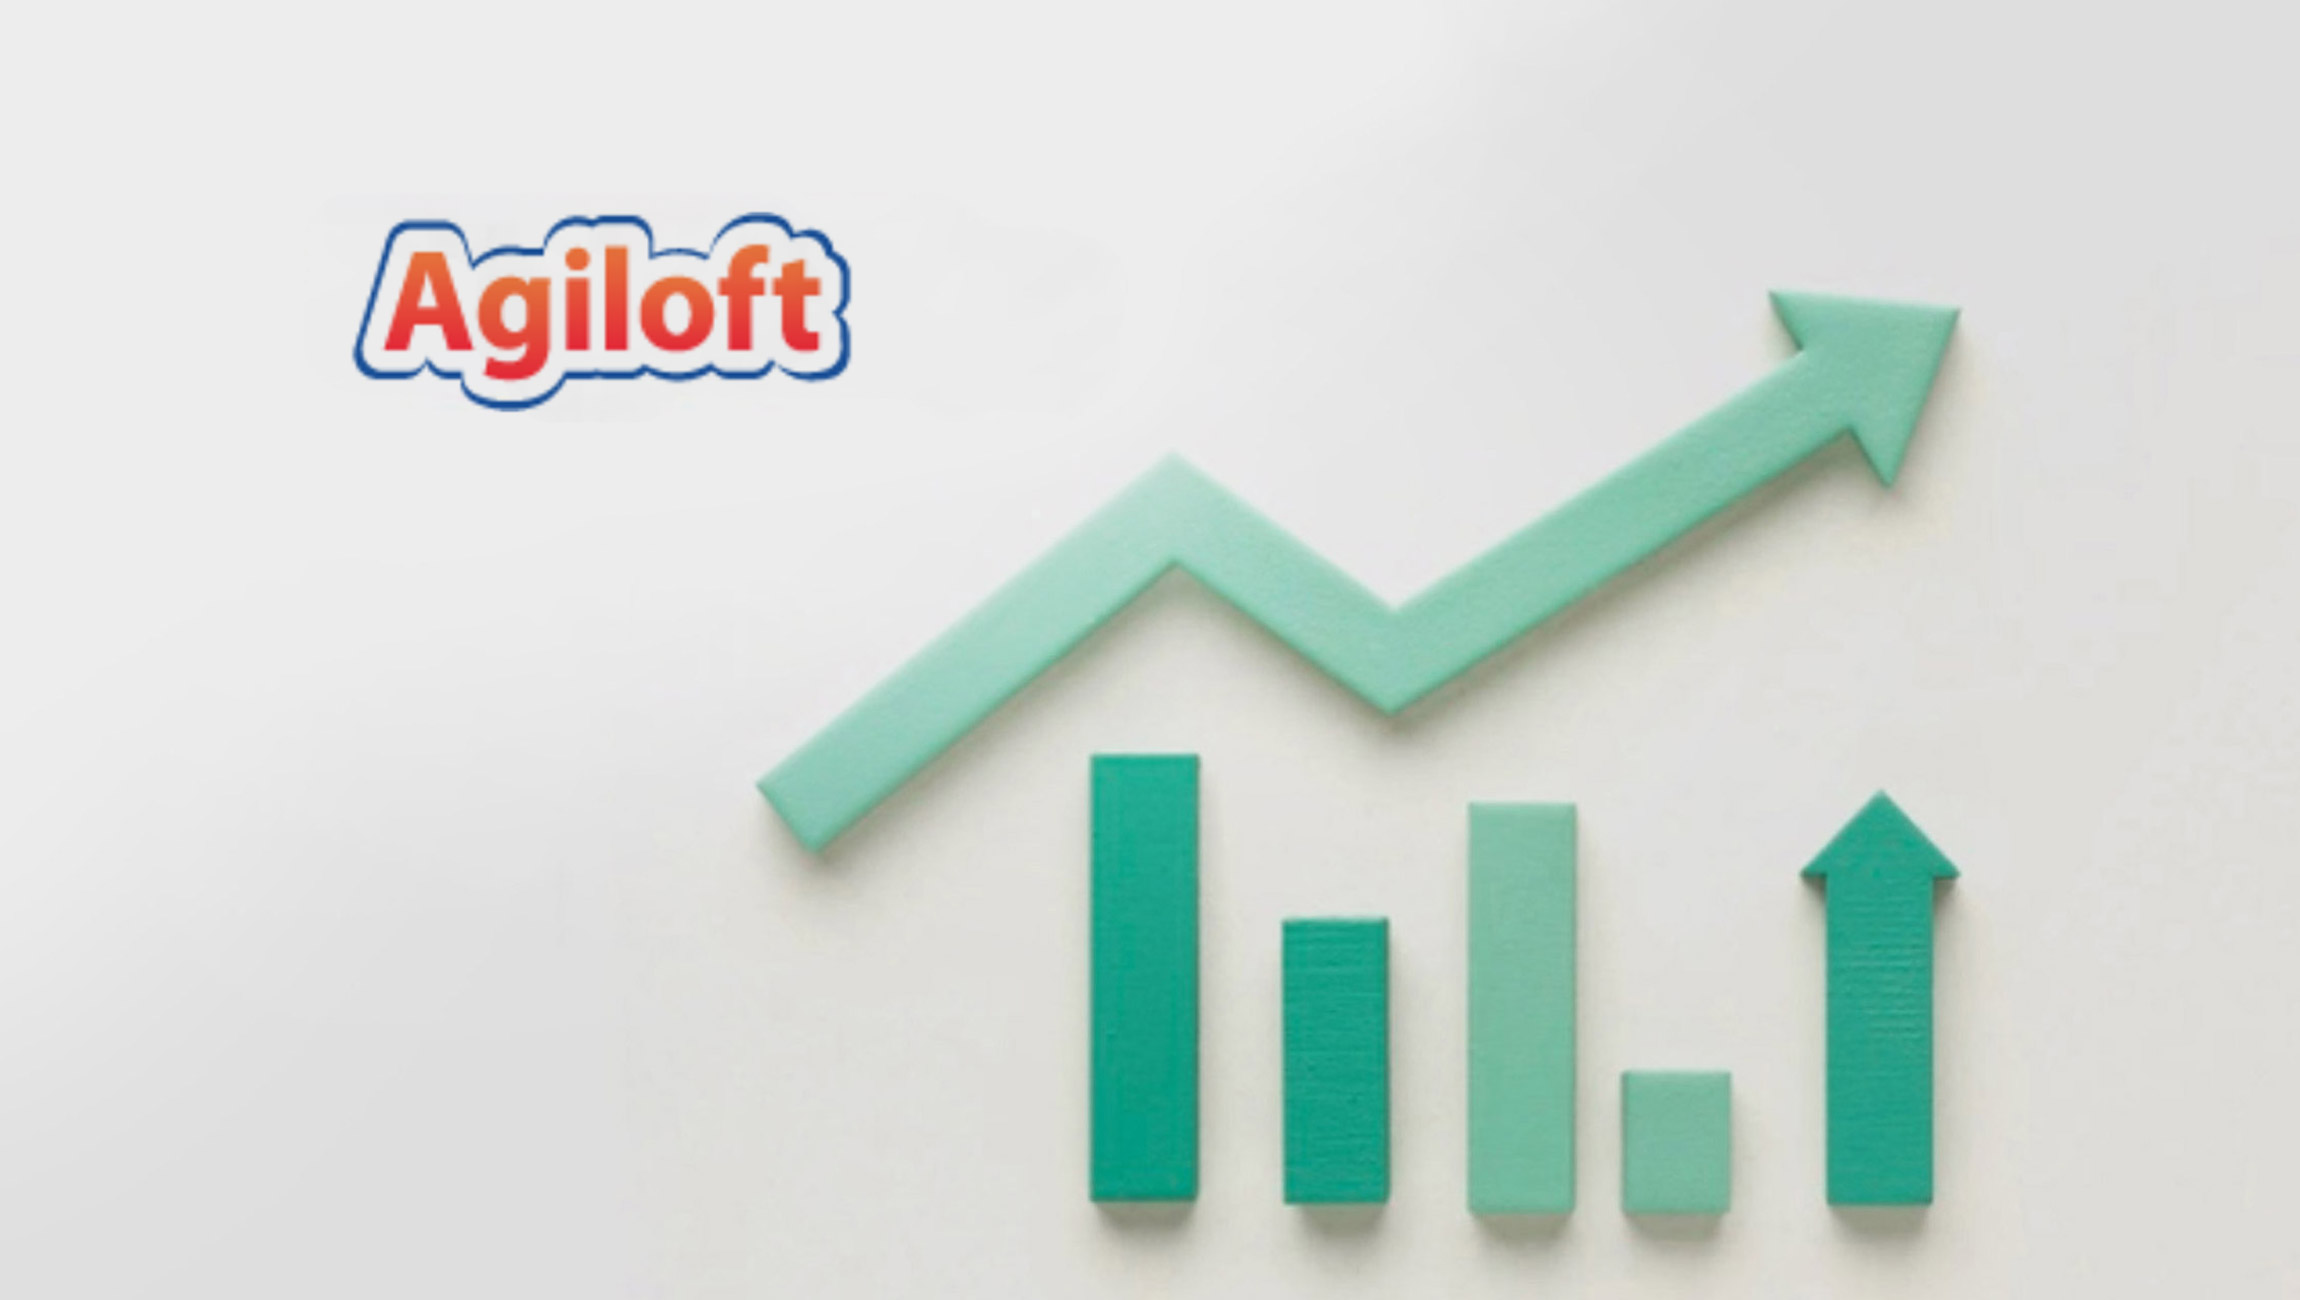 Agiloft Expands Leadership in Response to Rapid Company Growth and Increased Demand for Enterprise CLM Software